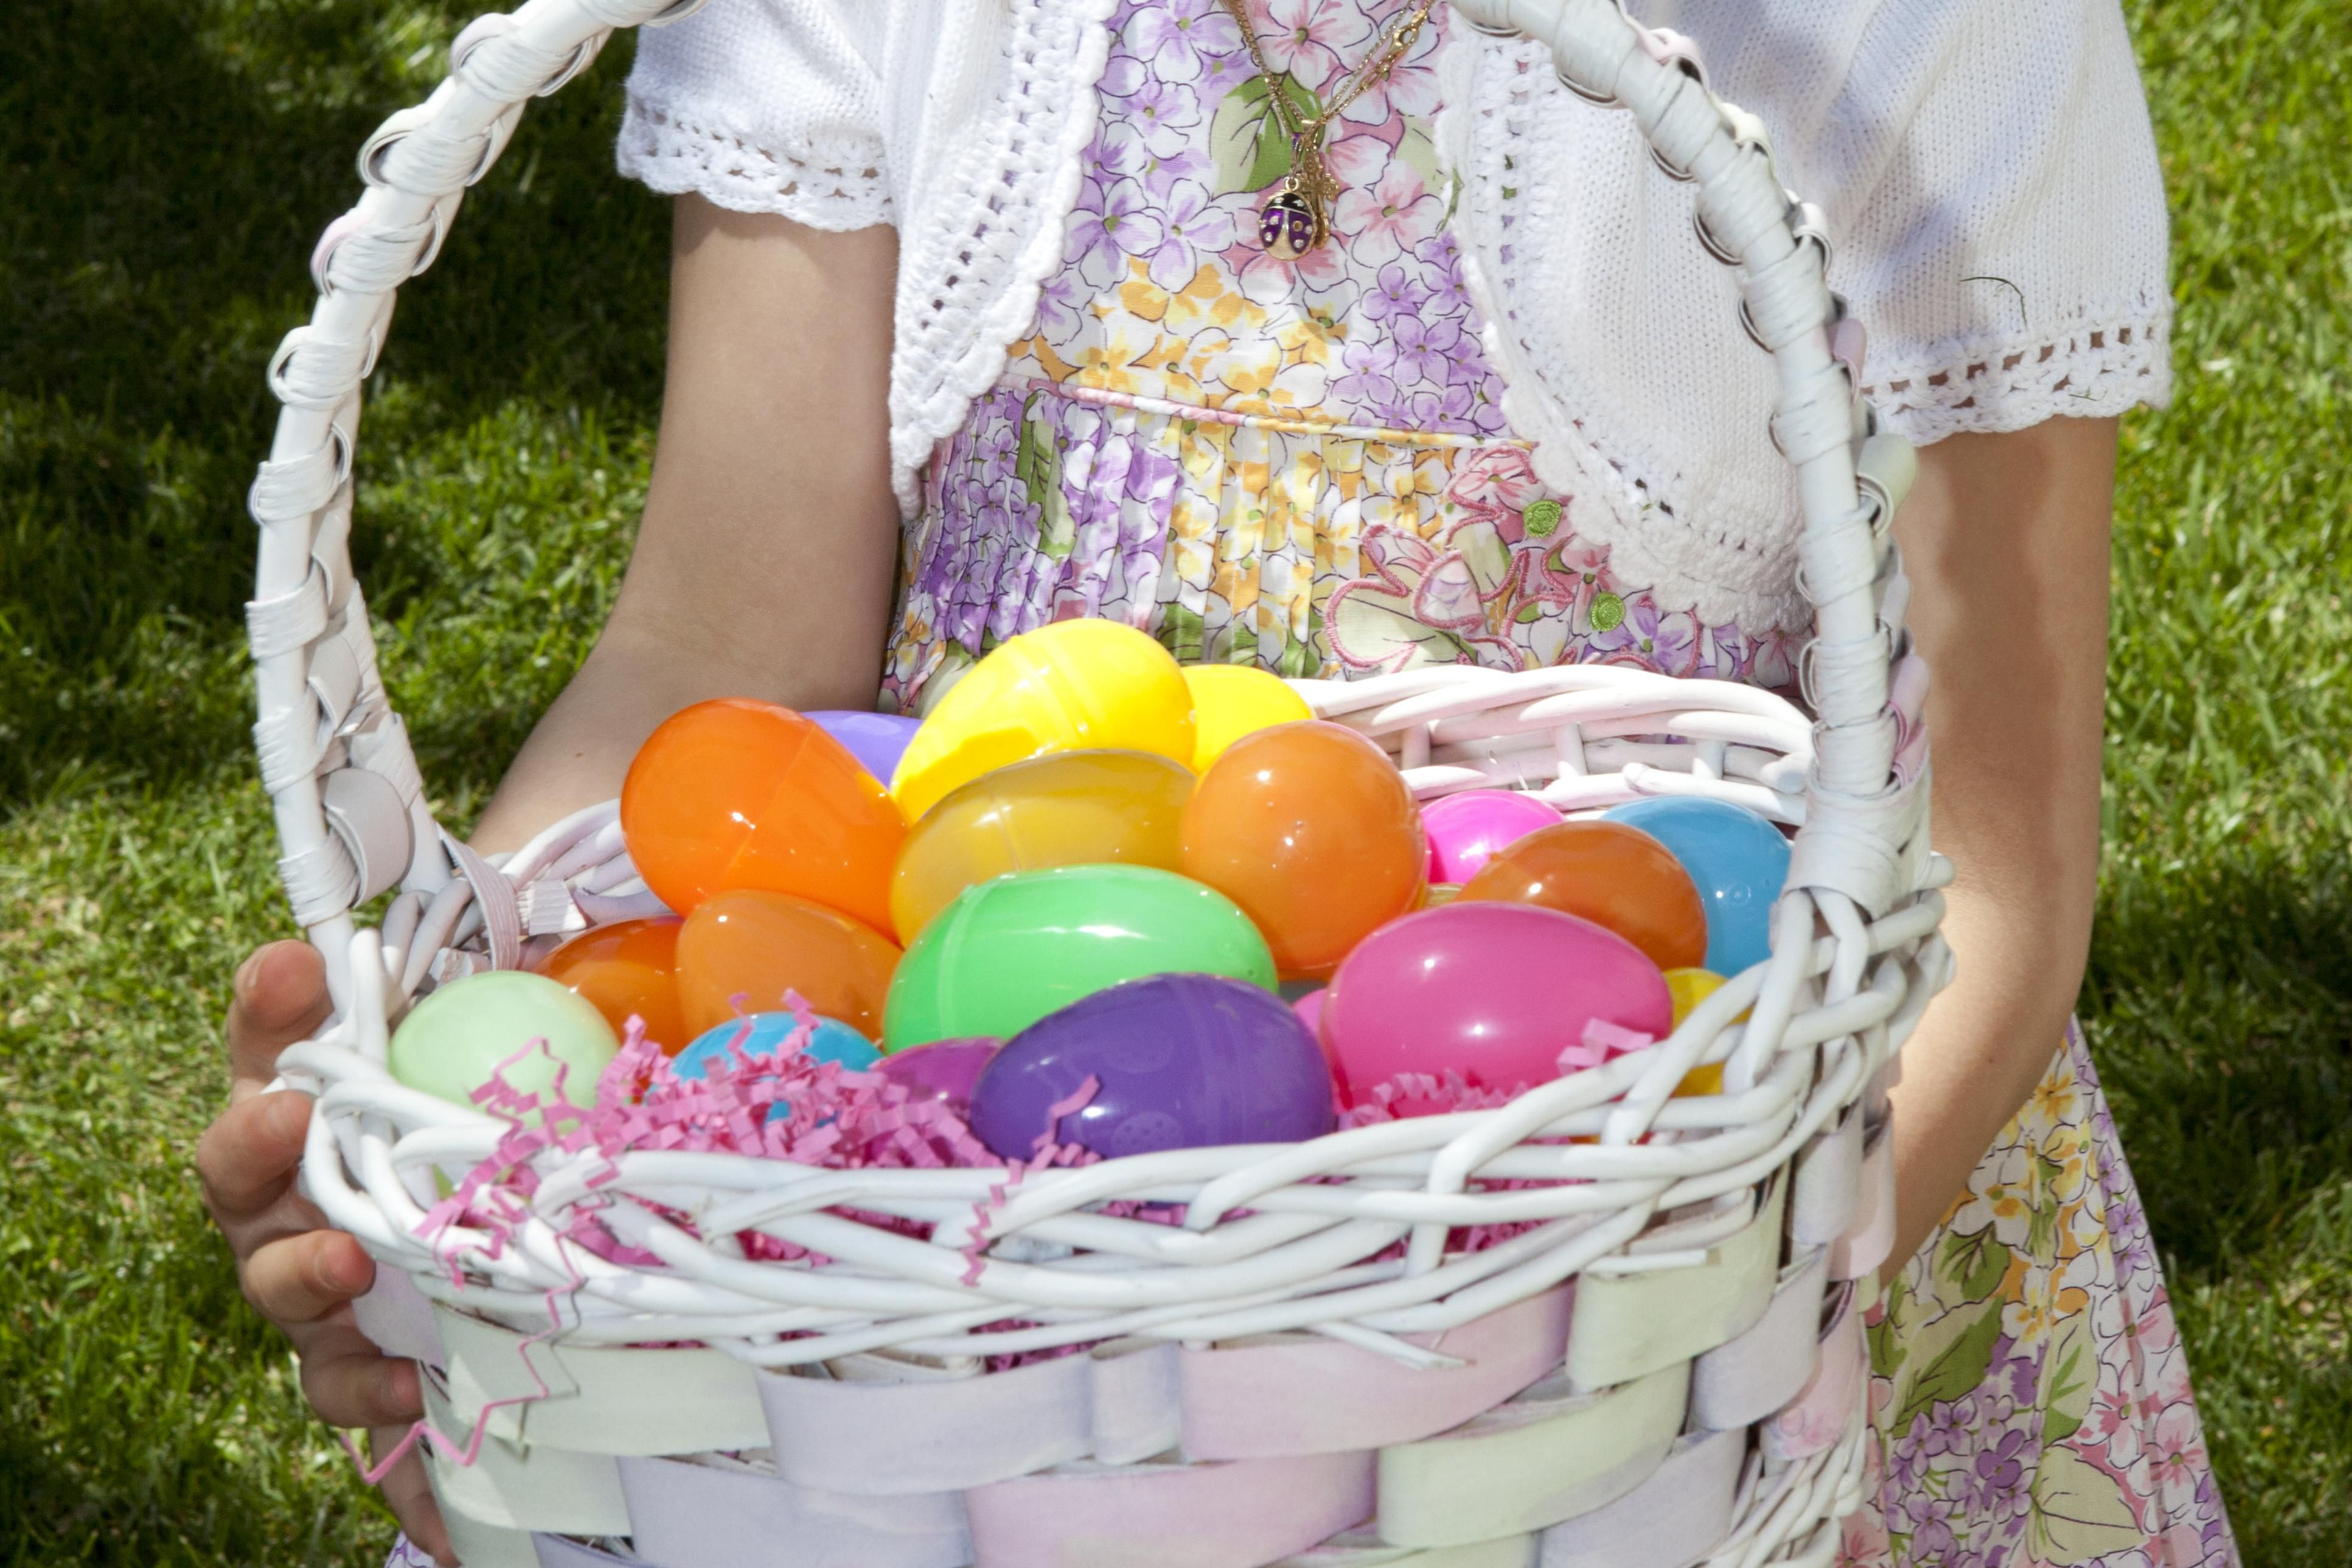 Creative ideas for filling easter baskets what are some non candy easter basket treats negle Choice Image